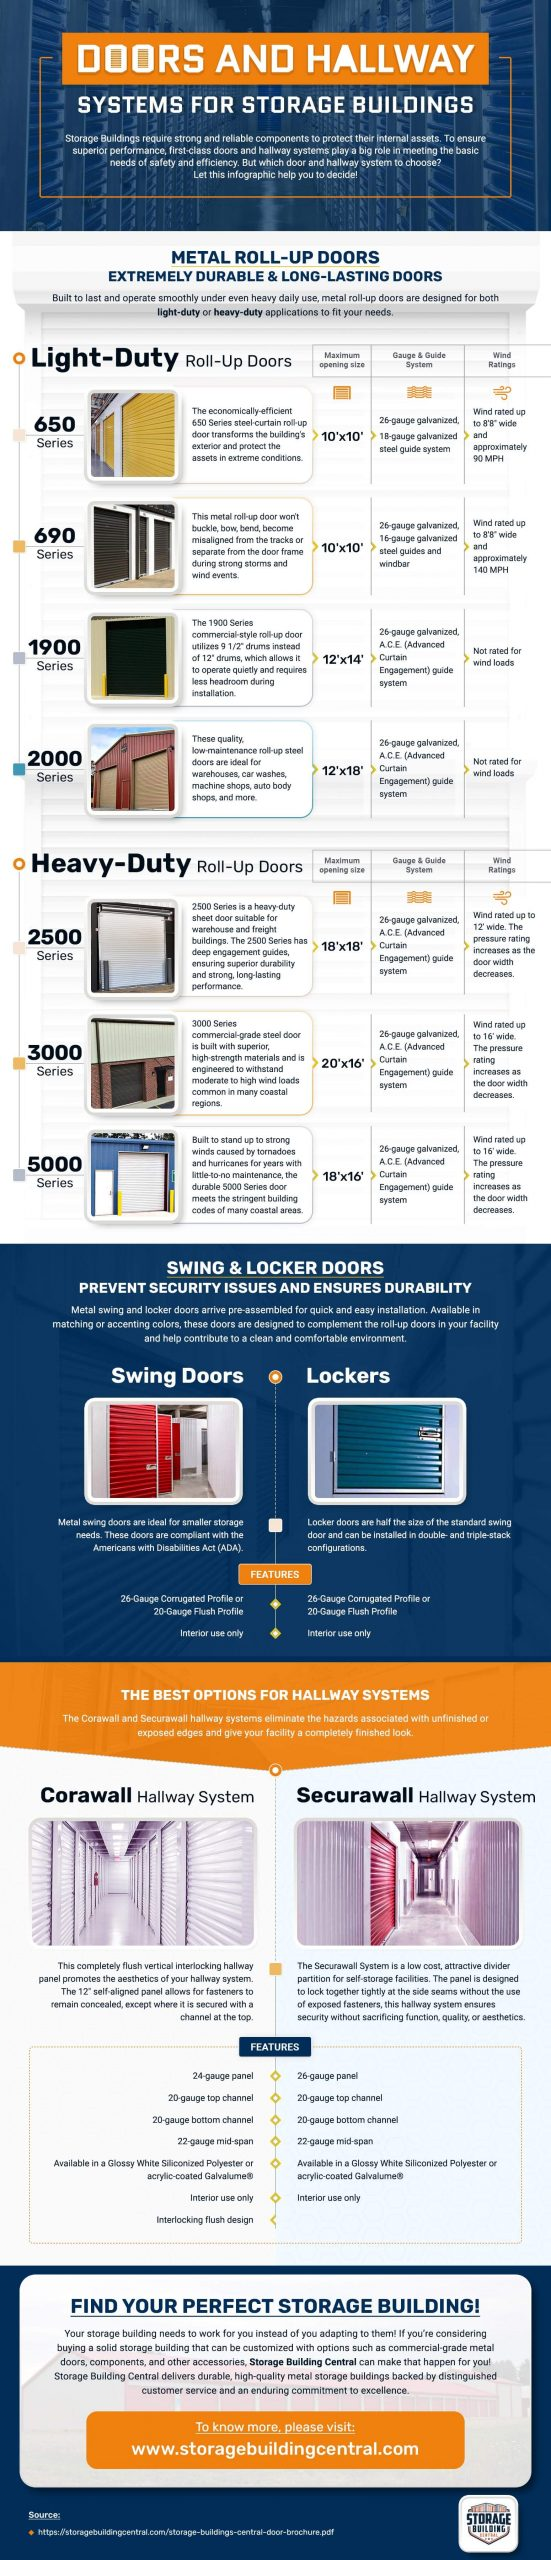 Doors-Hallway-Systems-for-Storage-Buildings-infographic